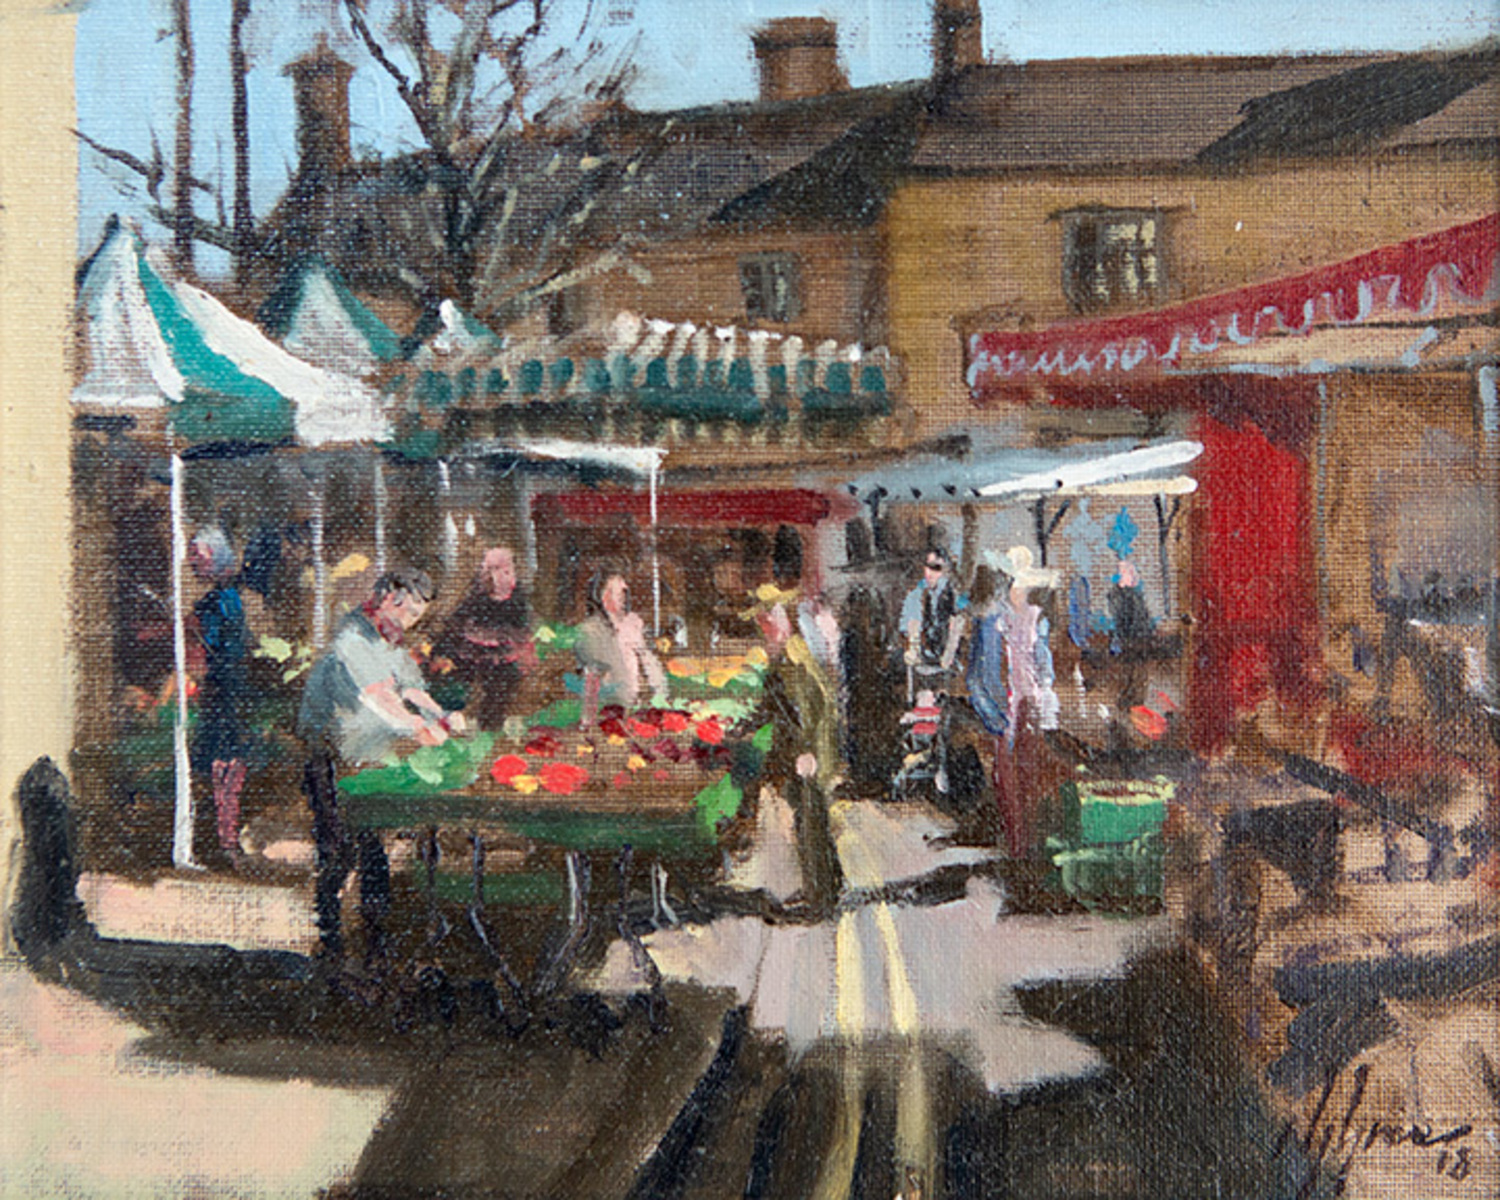 Market Day, Oundle